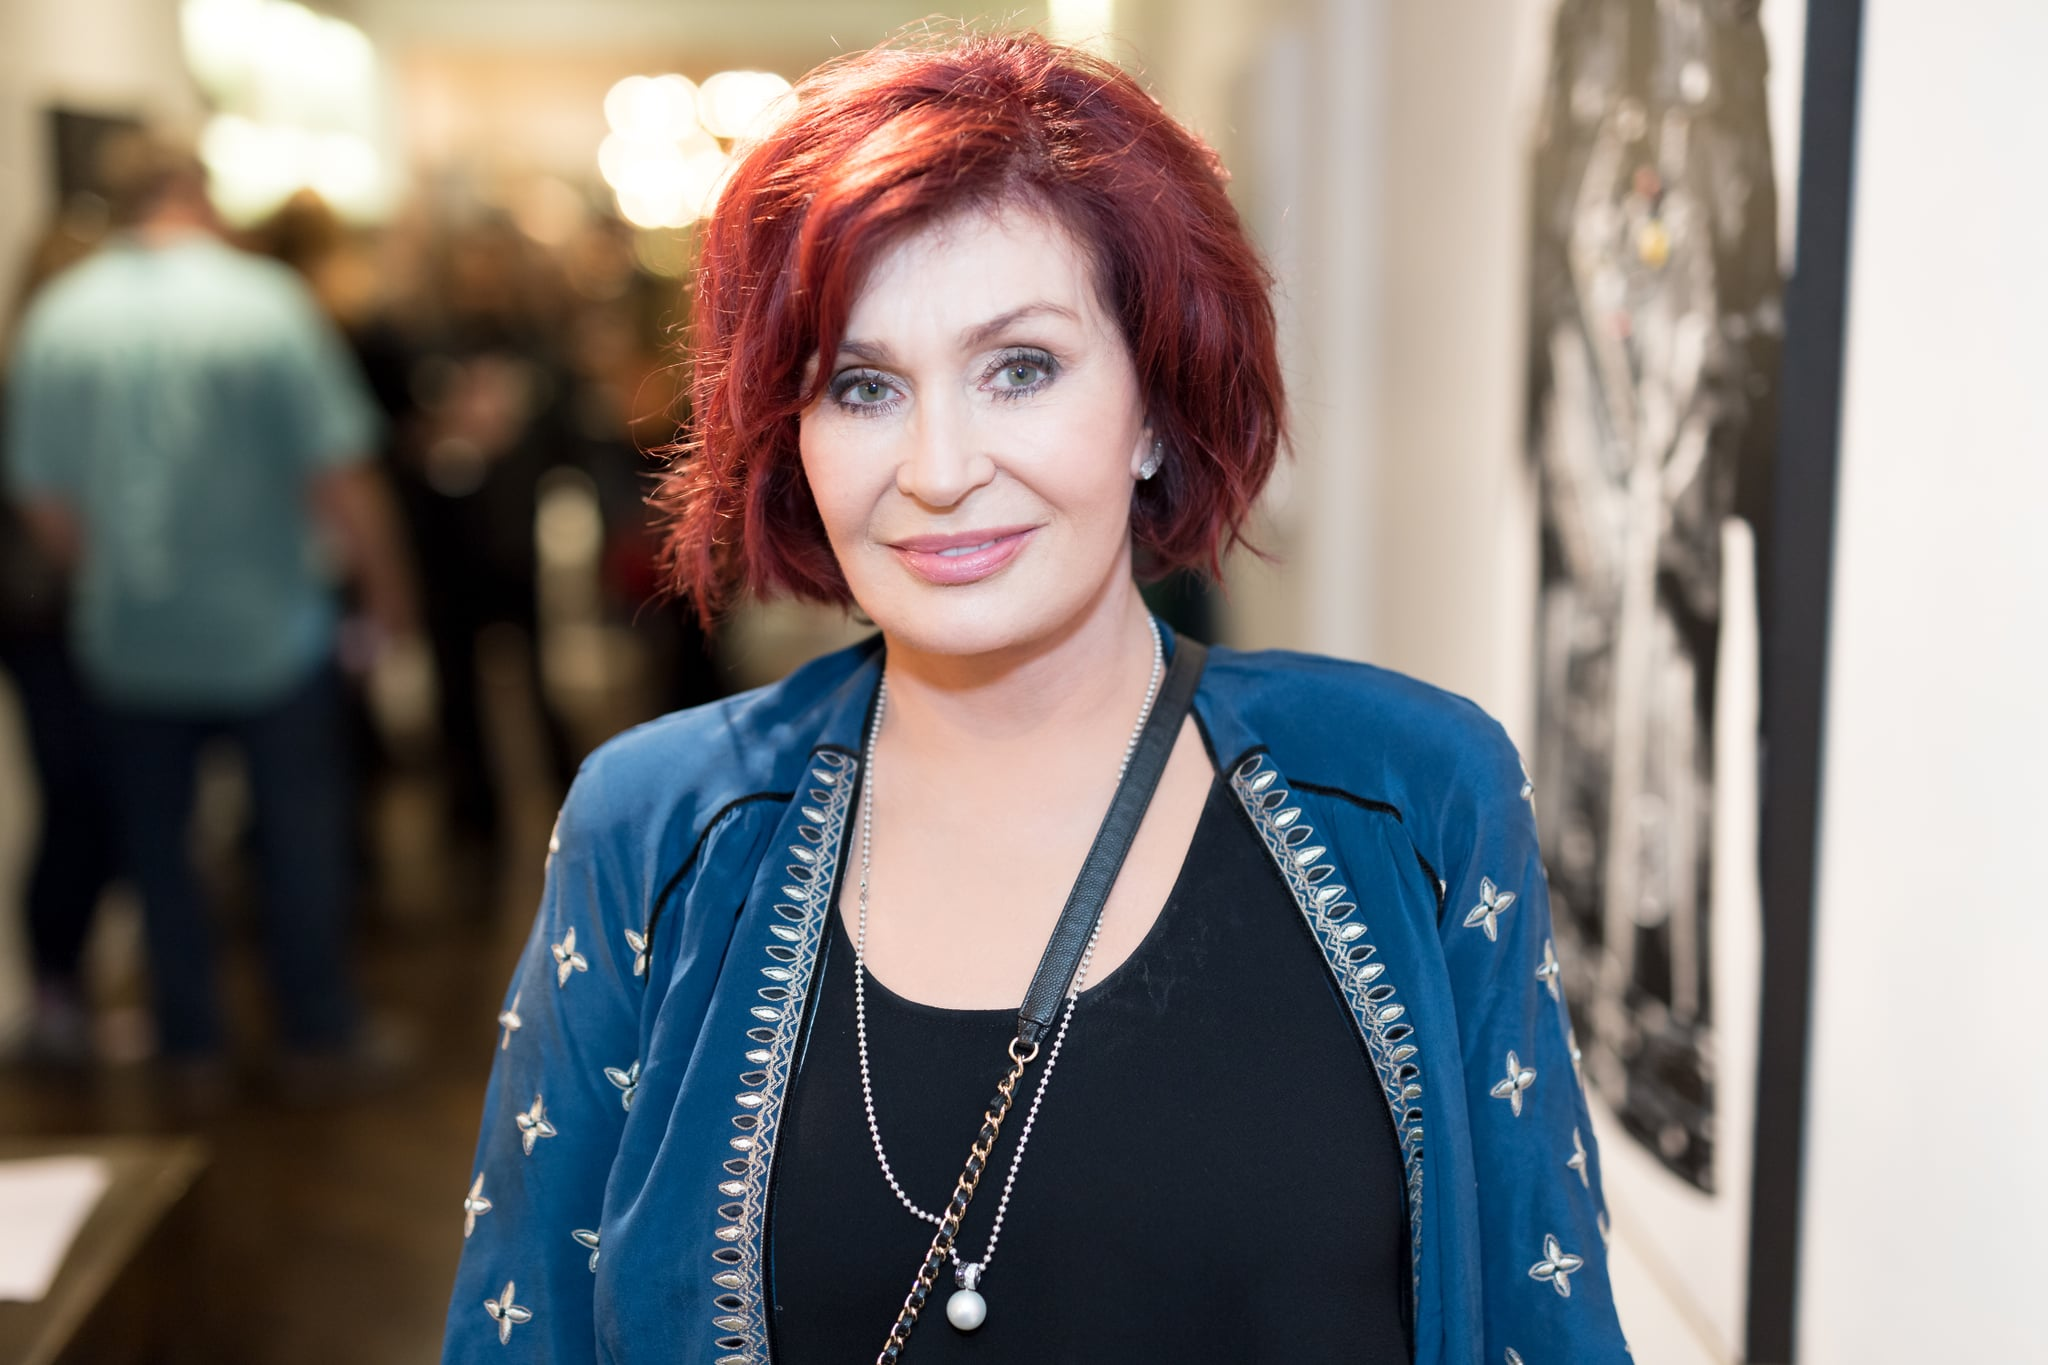 LOS ANGELES, CA - SEPTEMBER 28: (EXCLUSIVE COVERAGE)  Sharon Osbourne attends the Billy Morrison - Aude Somnia Solo Exhibition at Elisabeth Weinstock on September 28, 2017 in Los Angeles, California.  (Photo by Greg Doherty/Getty Images)